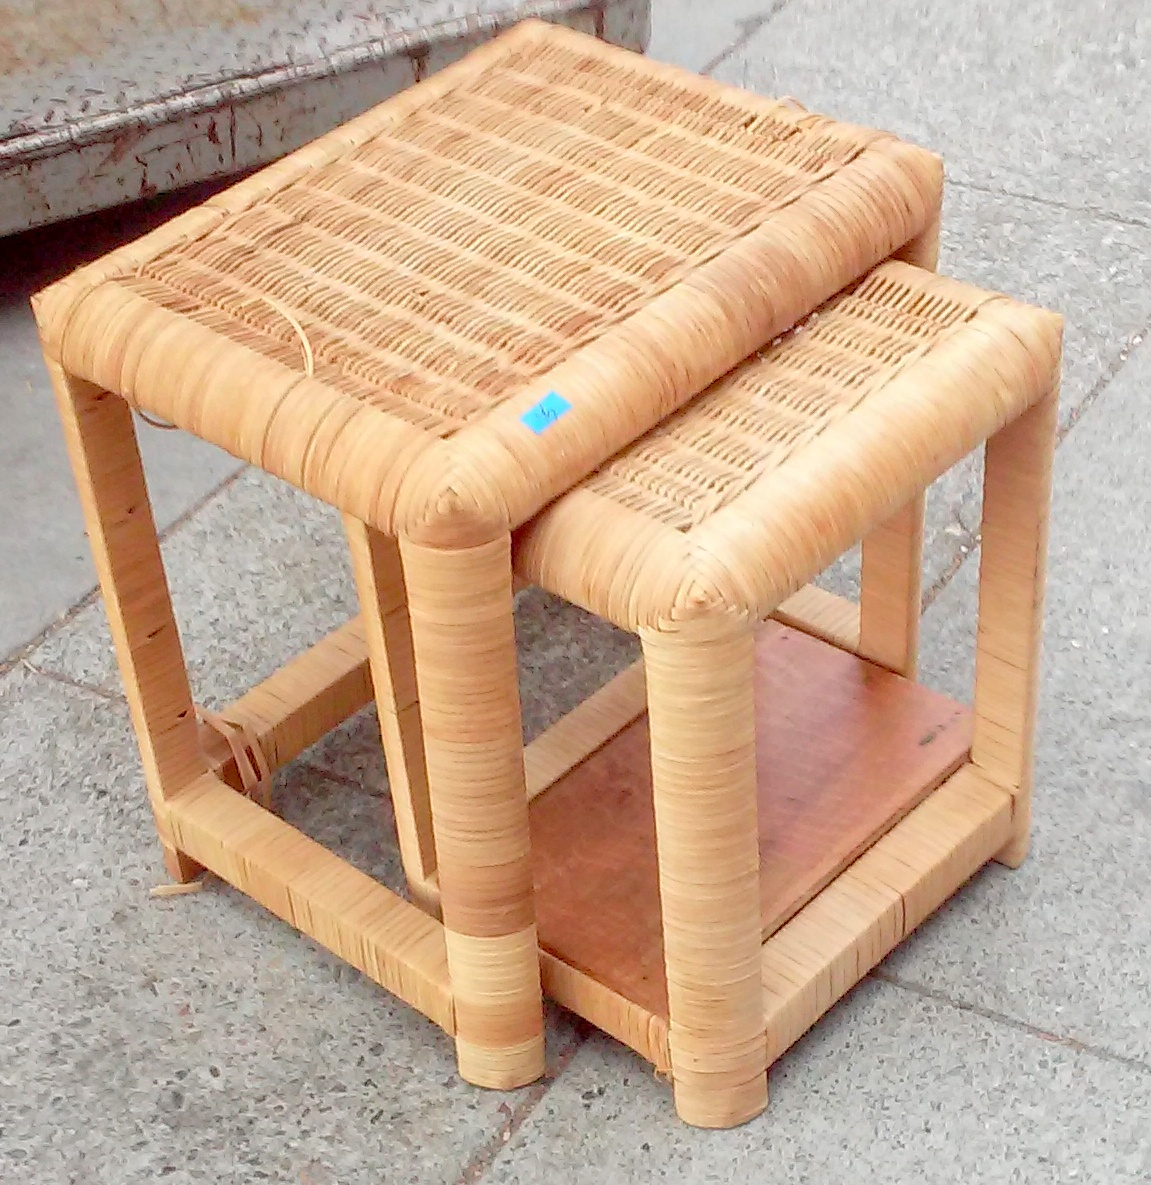 SOLD #7027 Wicker Nesting Tables   $15 / 2 Piece Set